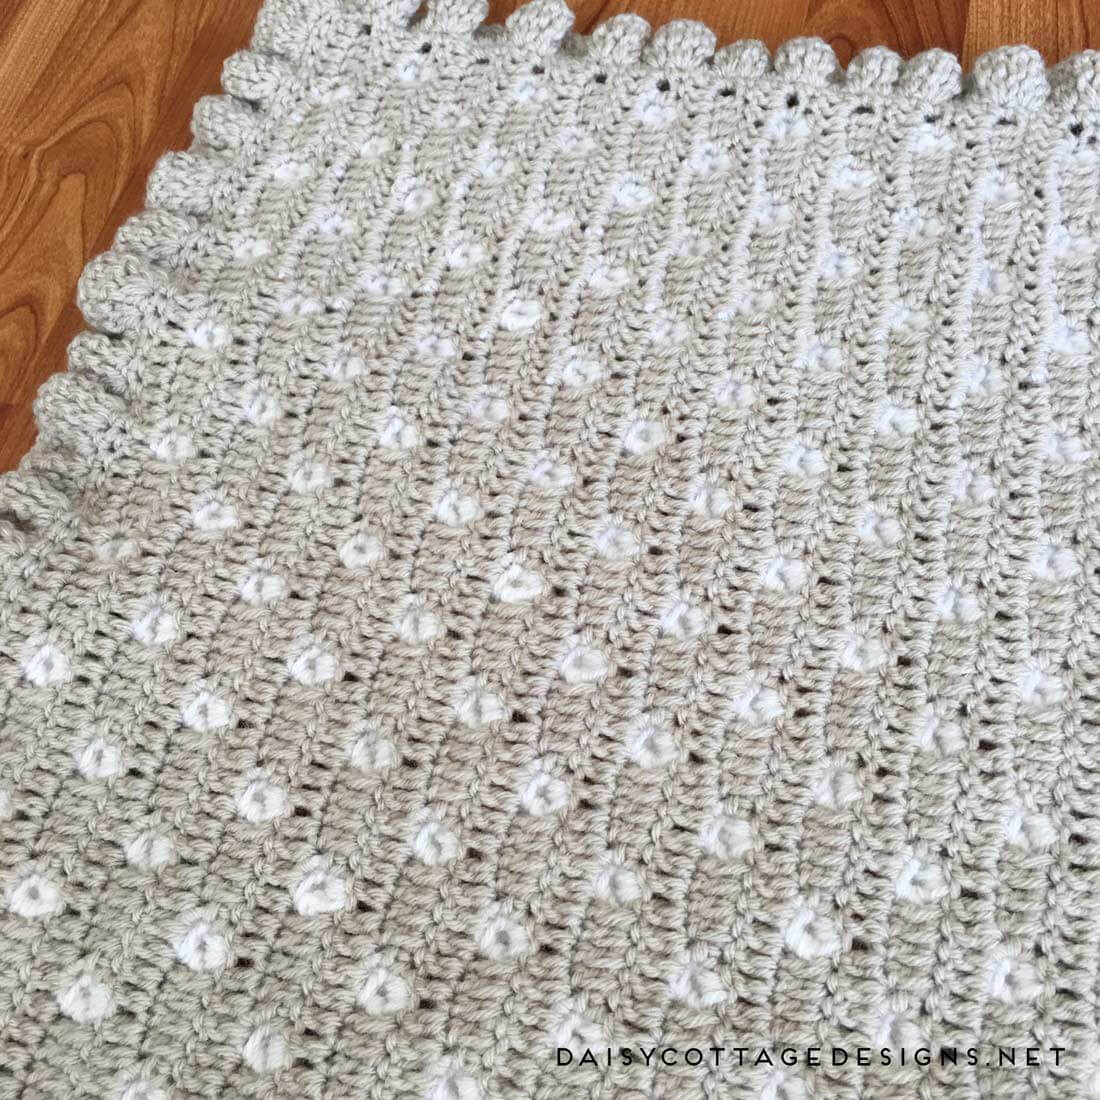 Crochet Patterns for Baby Blankets Unique Crochet Baby Blanket Pattern From Daisy Cottage Designs Of Great 50 Photos Crochet Patterns for Baby Blankets